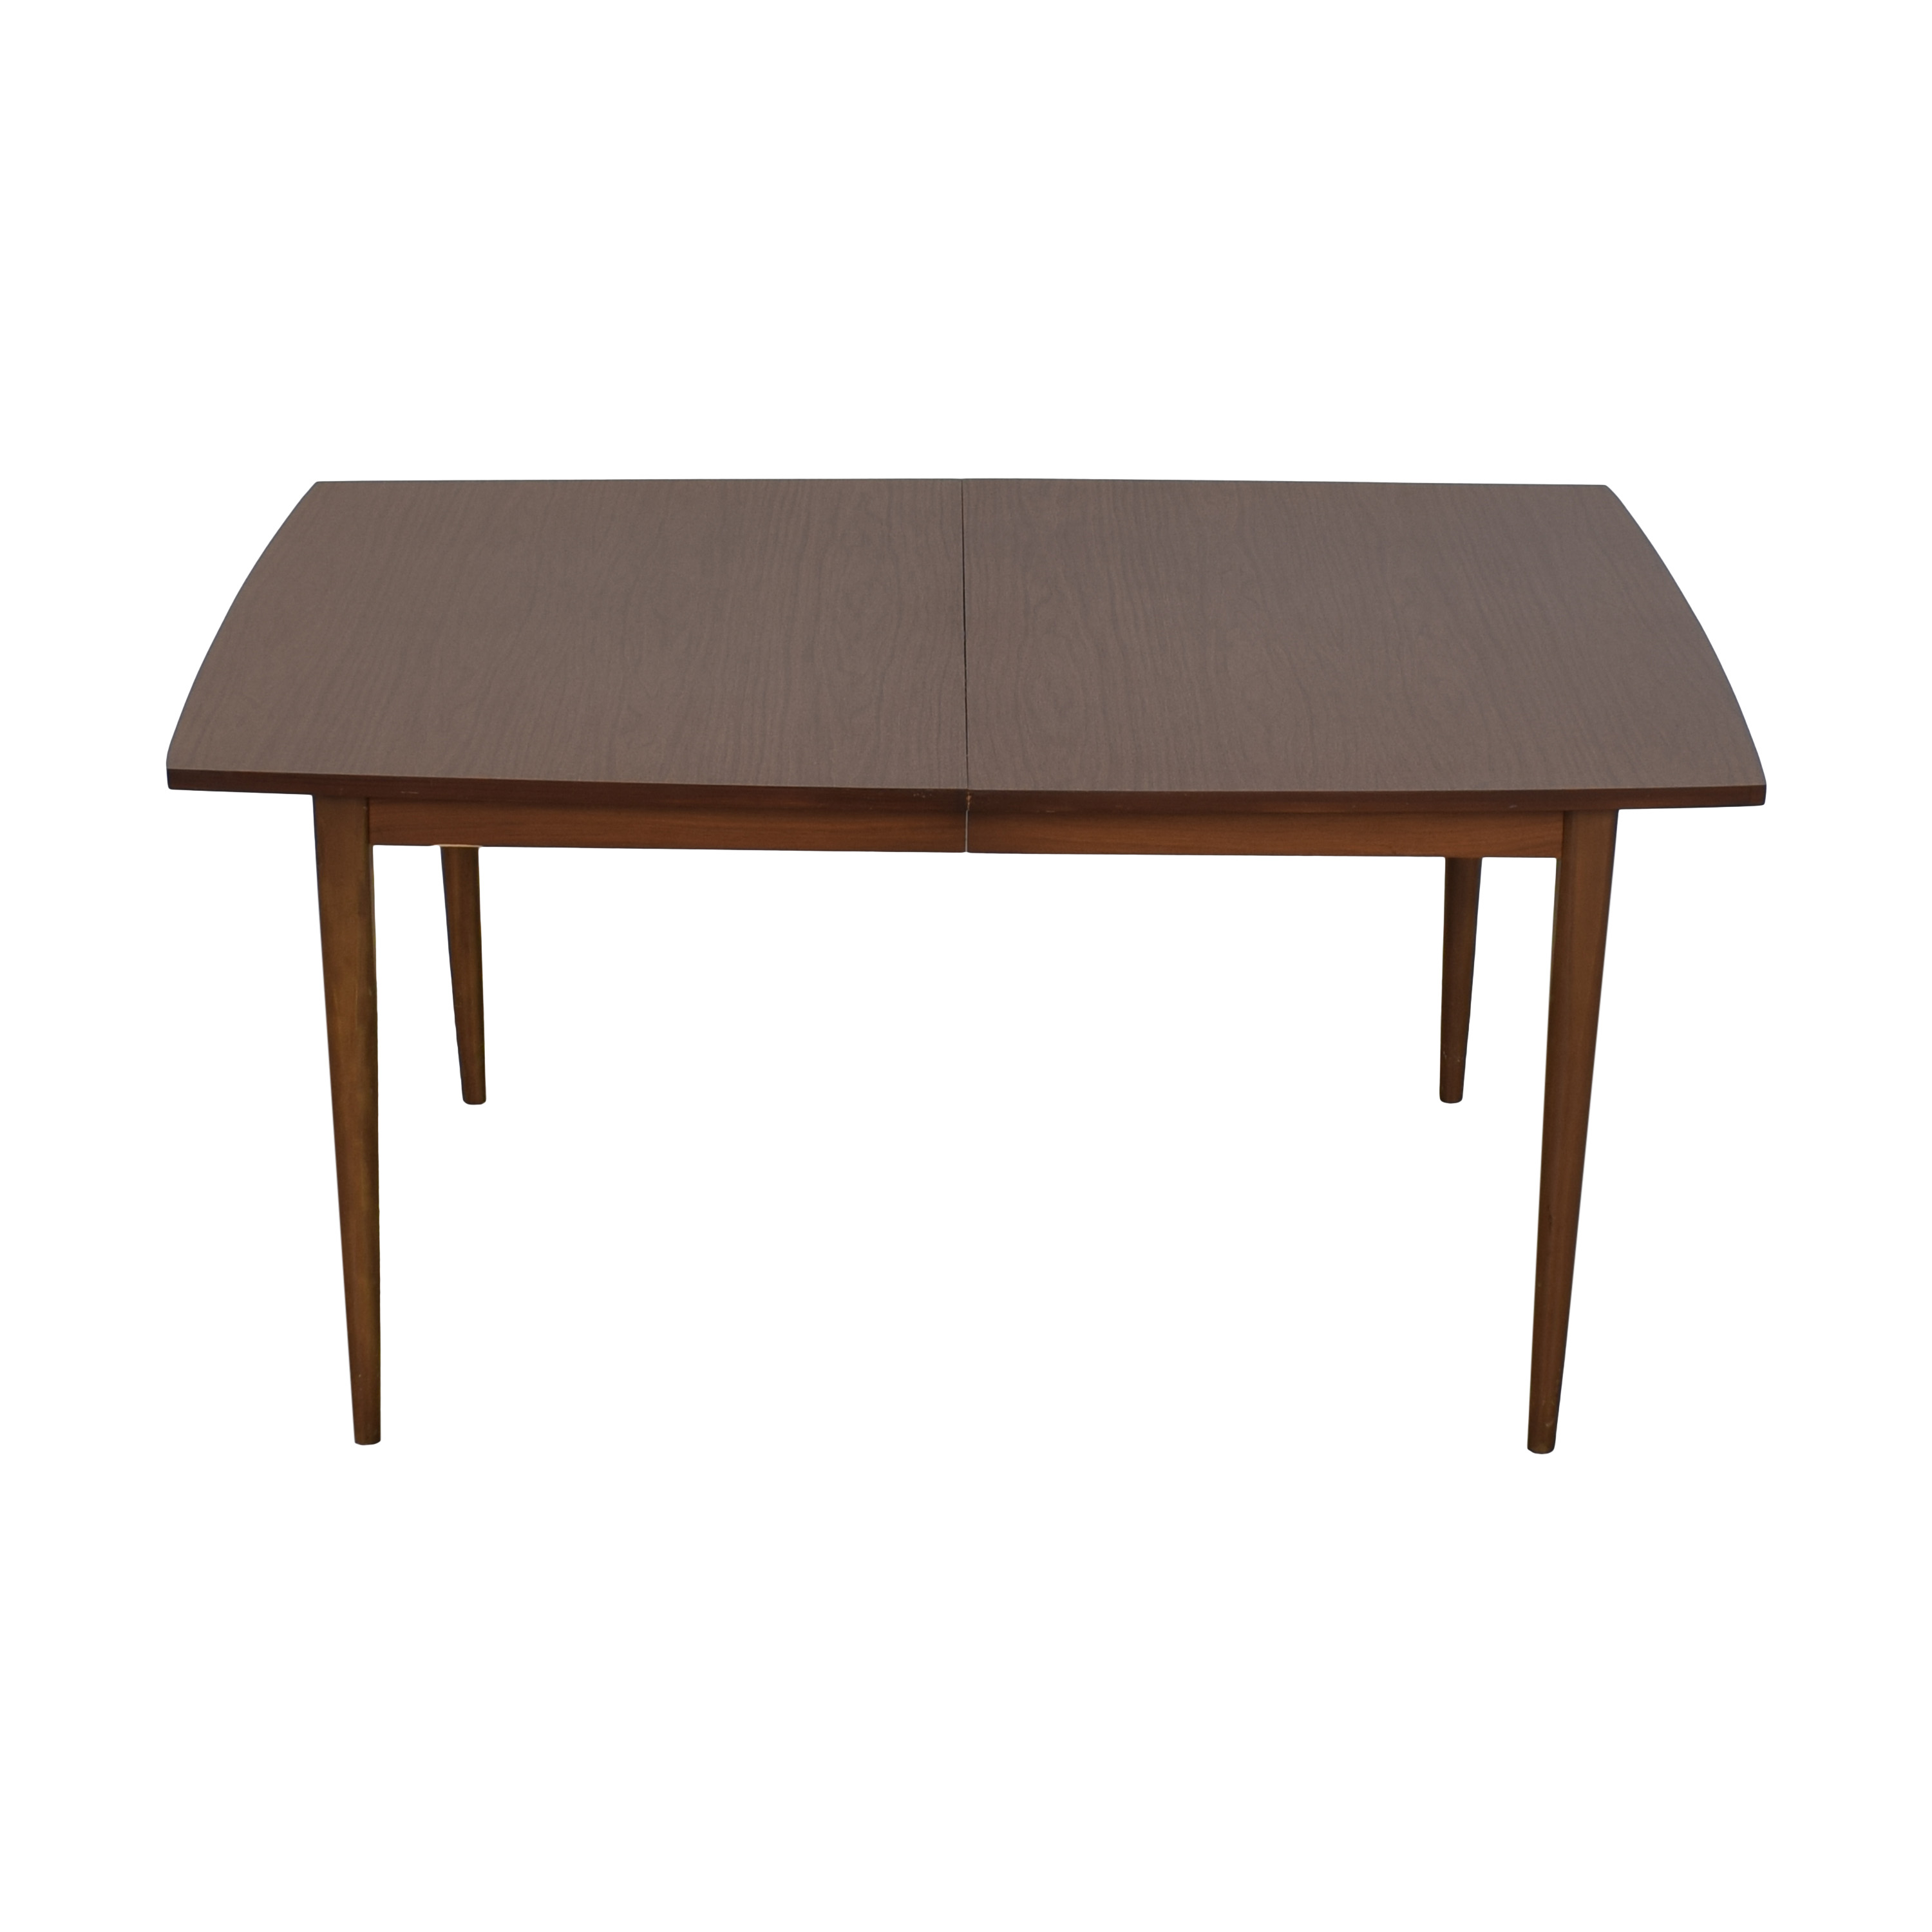 Mid Century Extendable Dining Room Table second hand